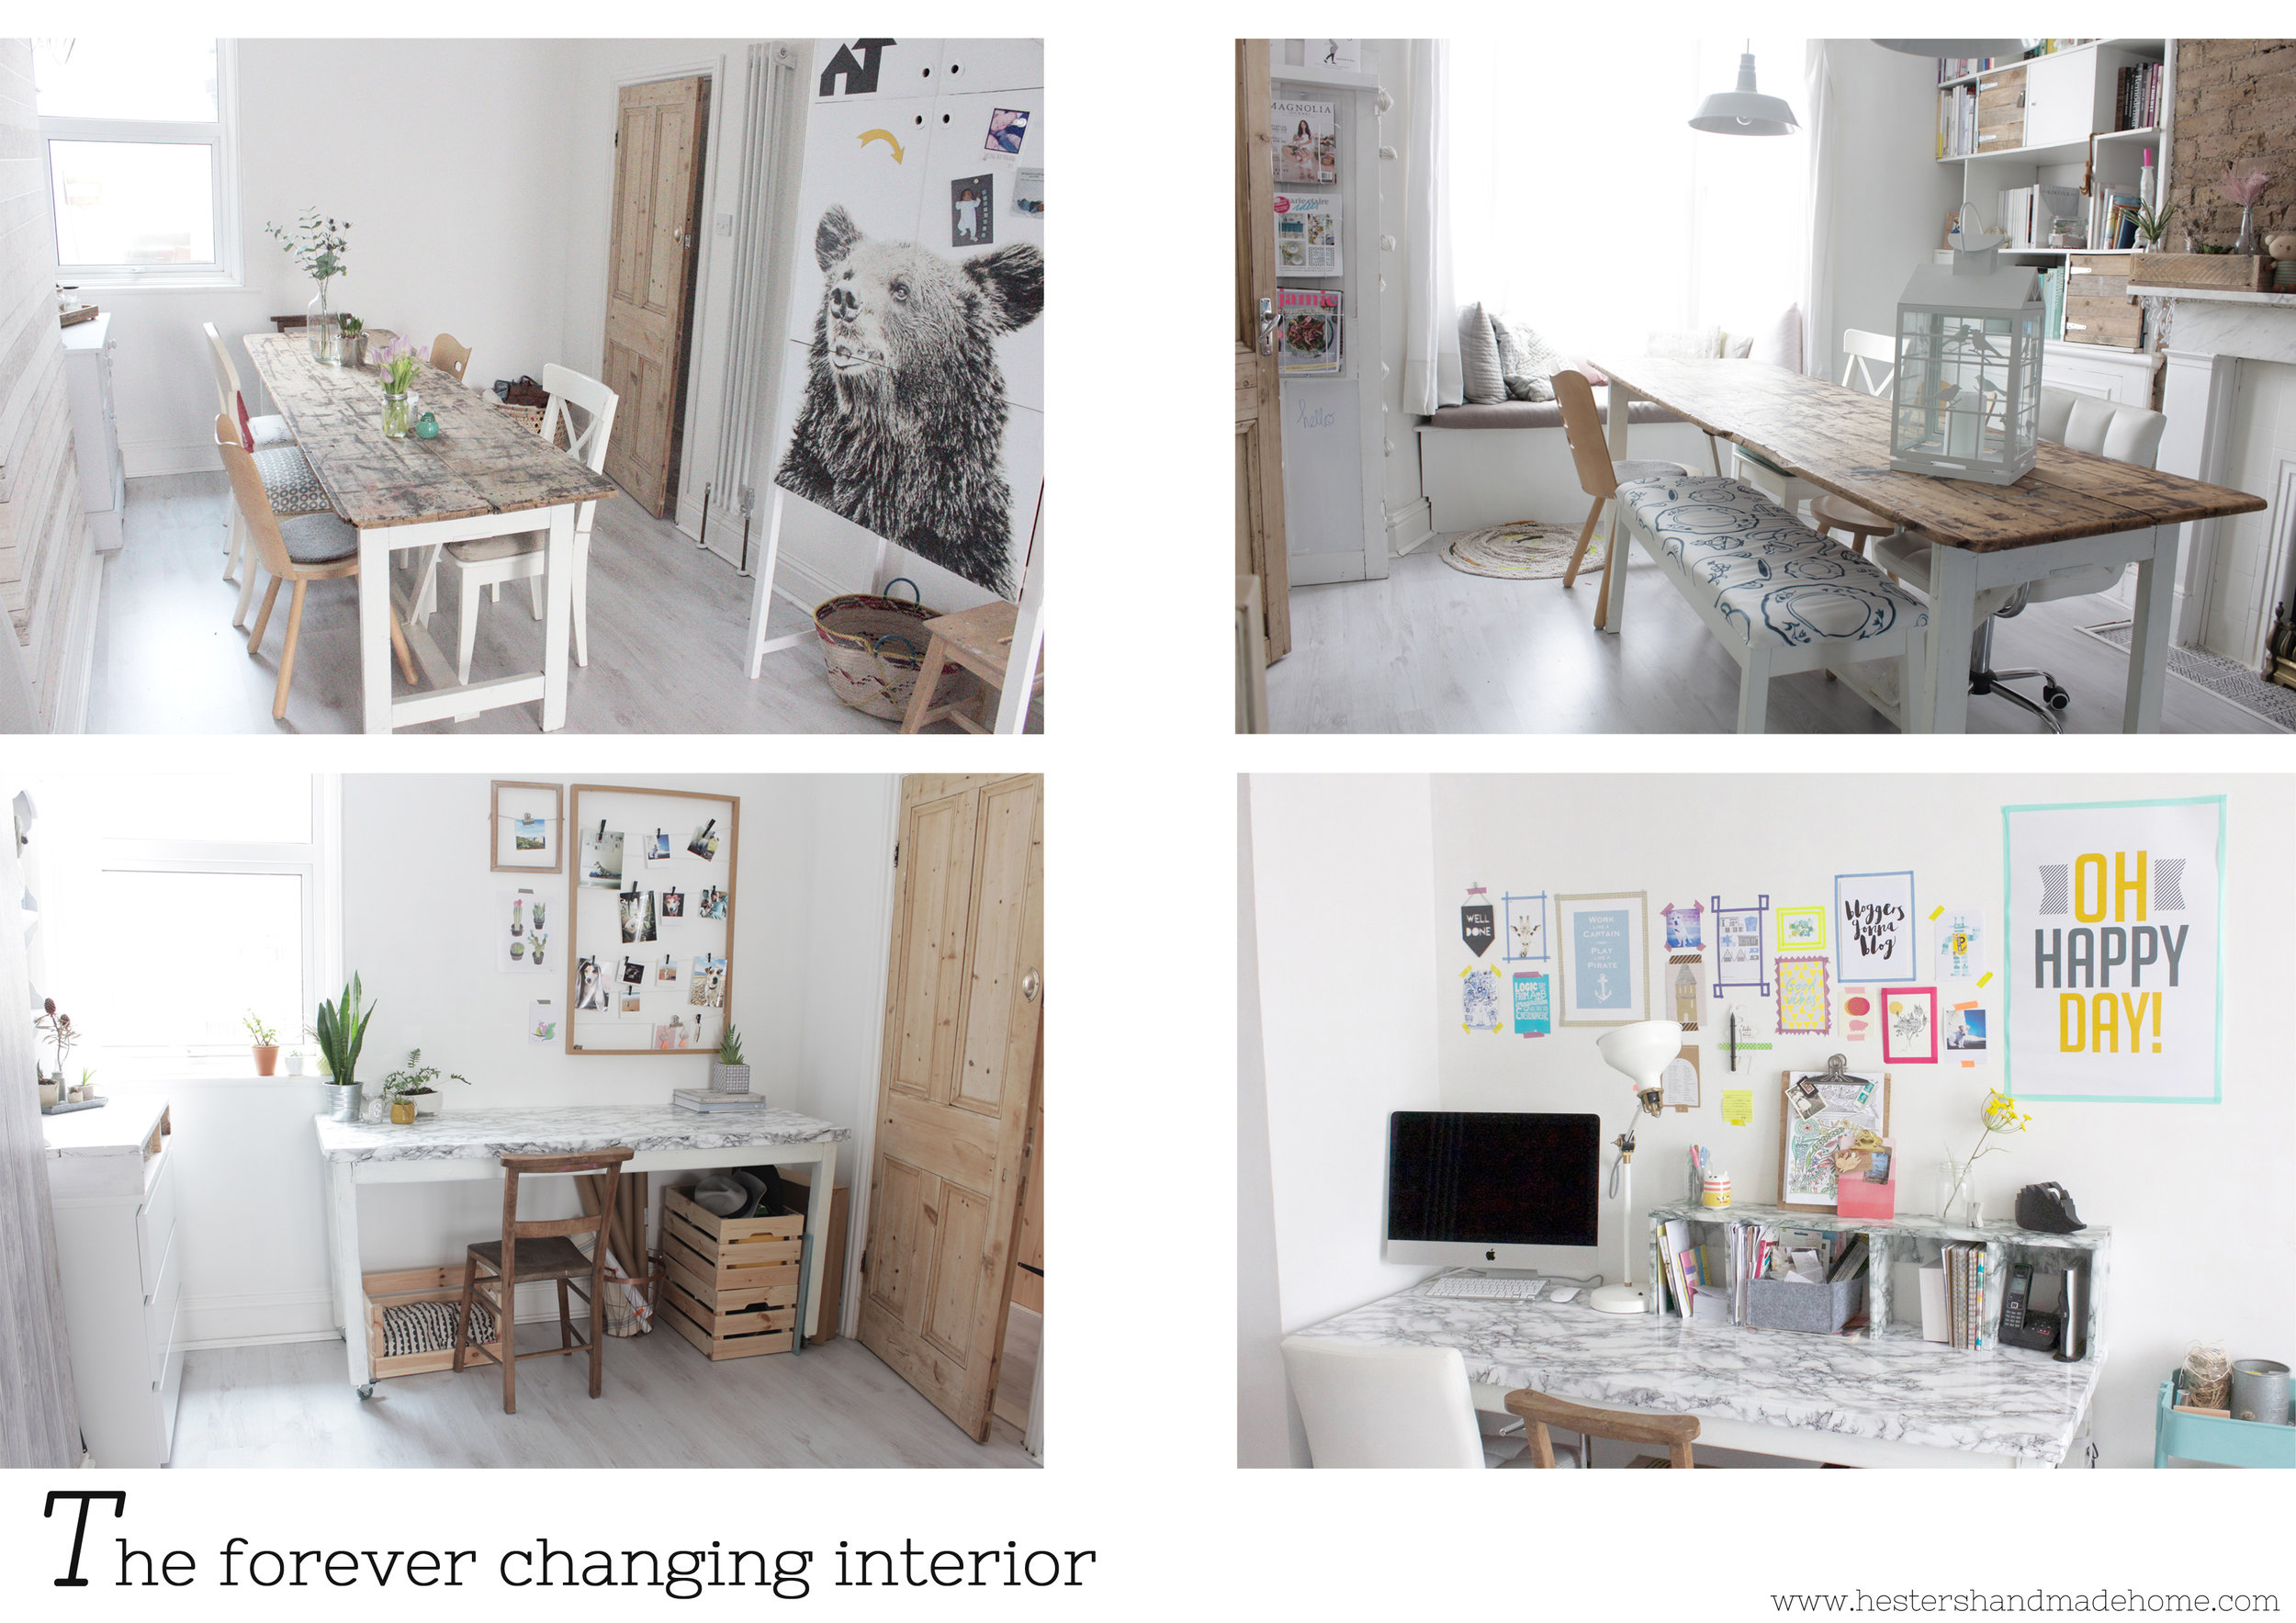 home makeover by www.hestershandmadehome.com